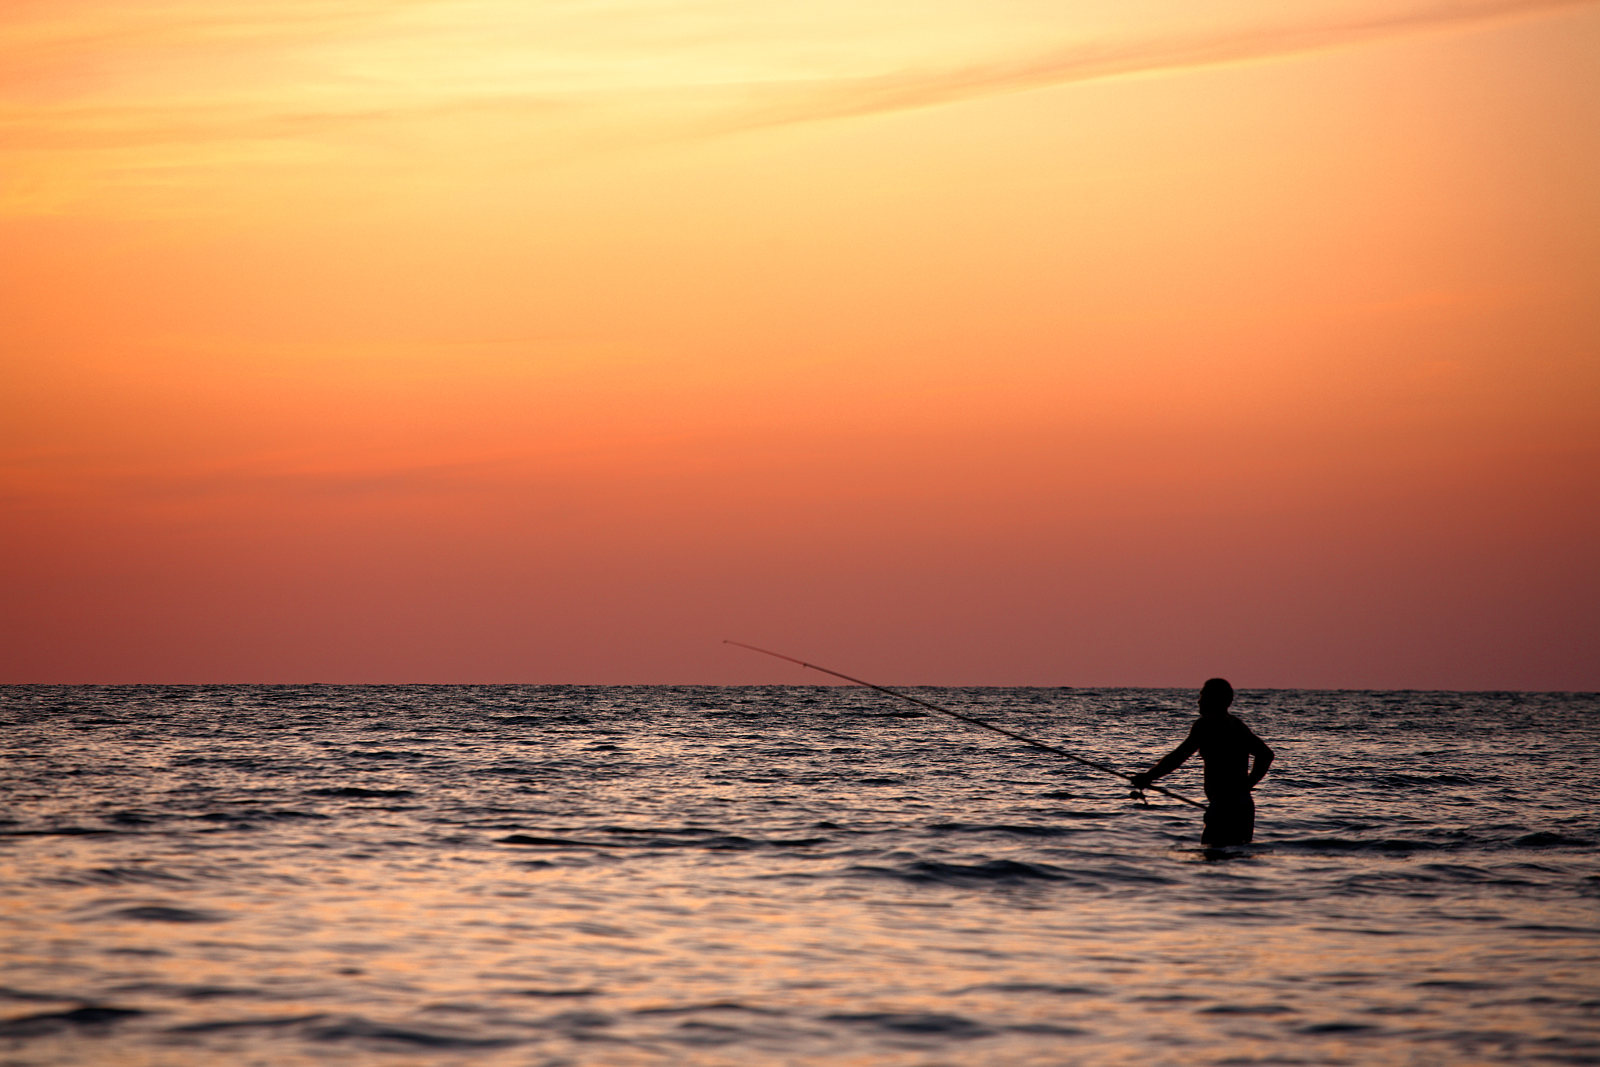 Fisherman in the sea at sunset